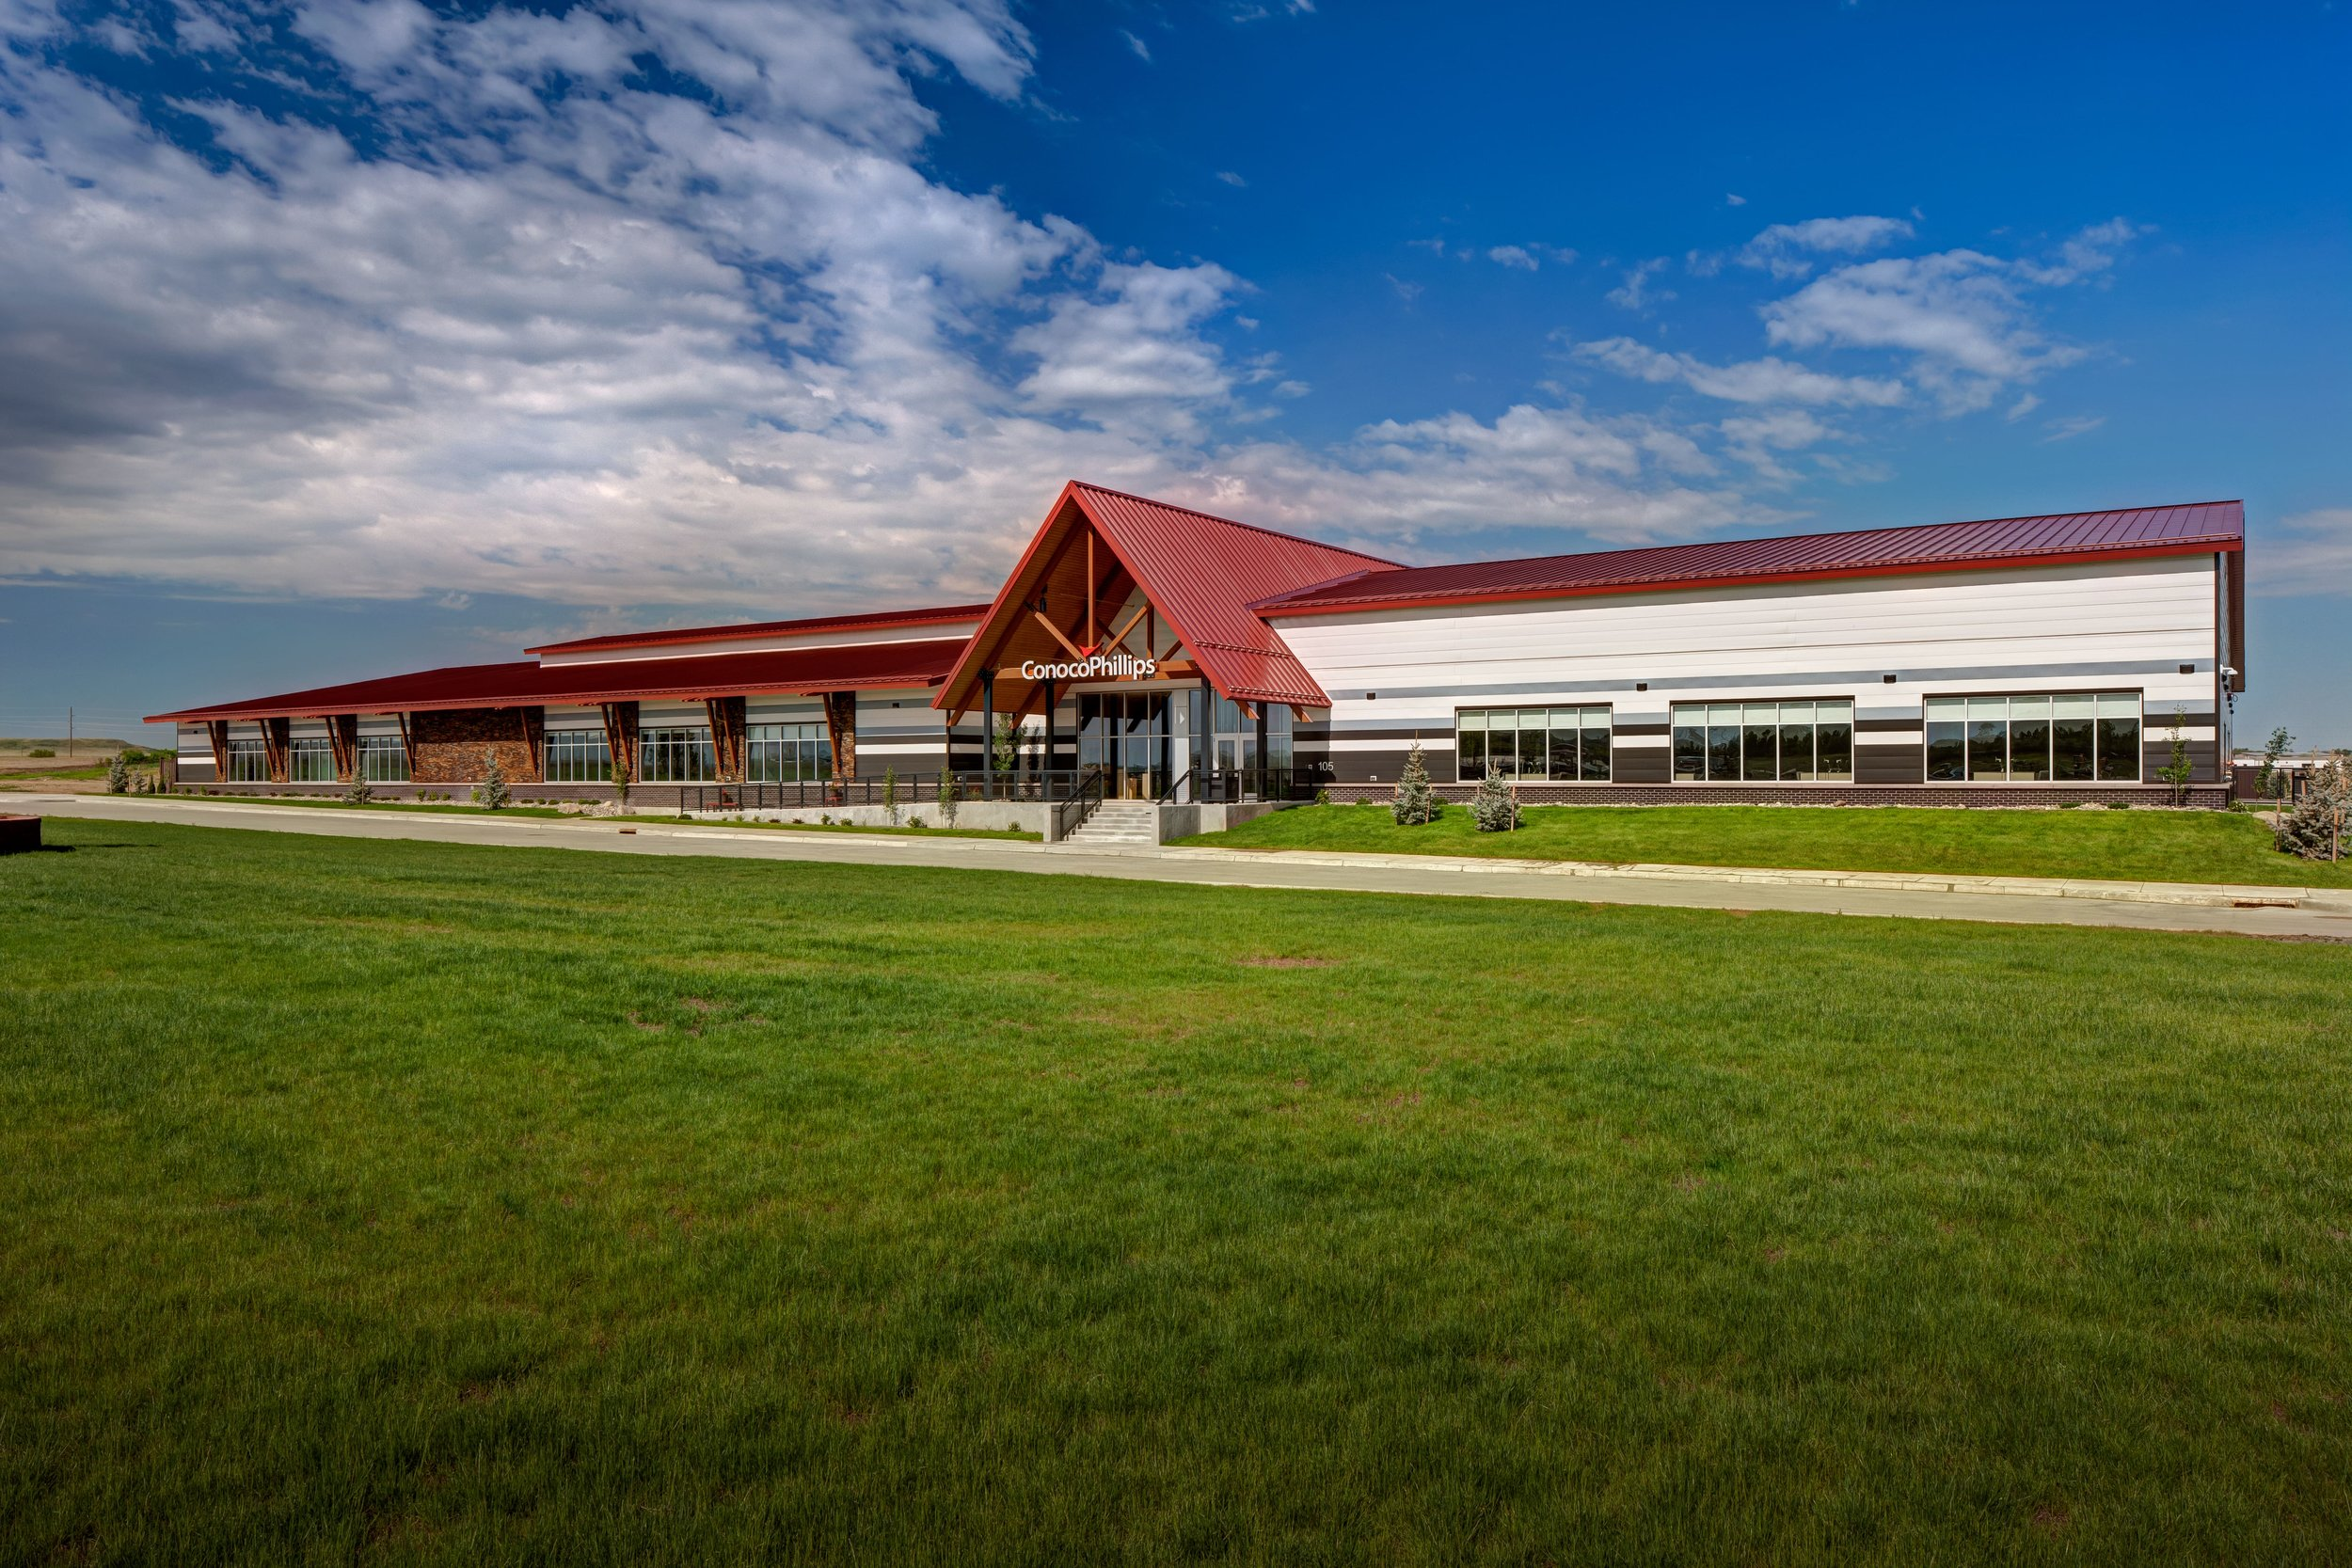 ConocoPhillips Watford City Field Office - Watford City, ND